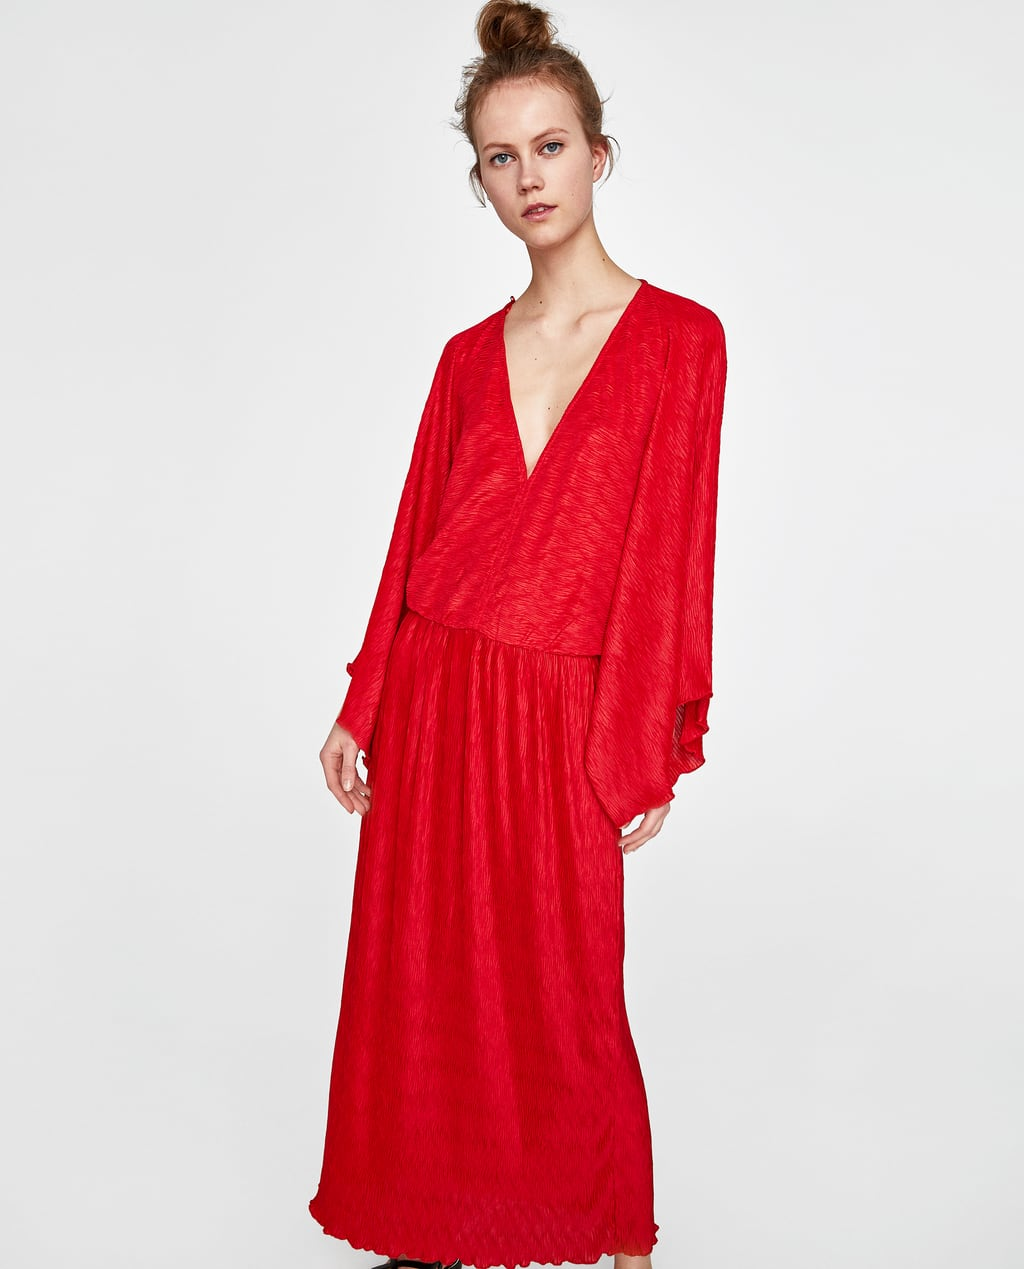 PLEATED KIMONO DRESS - DRESSES-WOMAN-SALE | ZARA United States